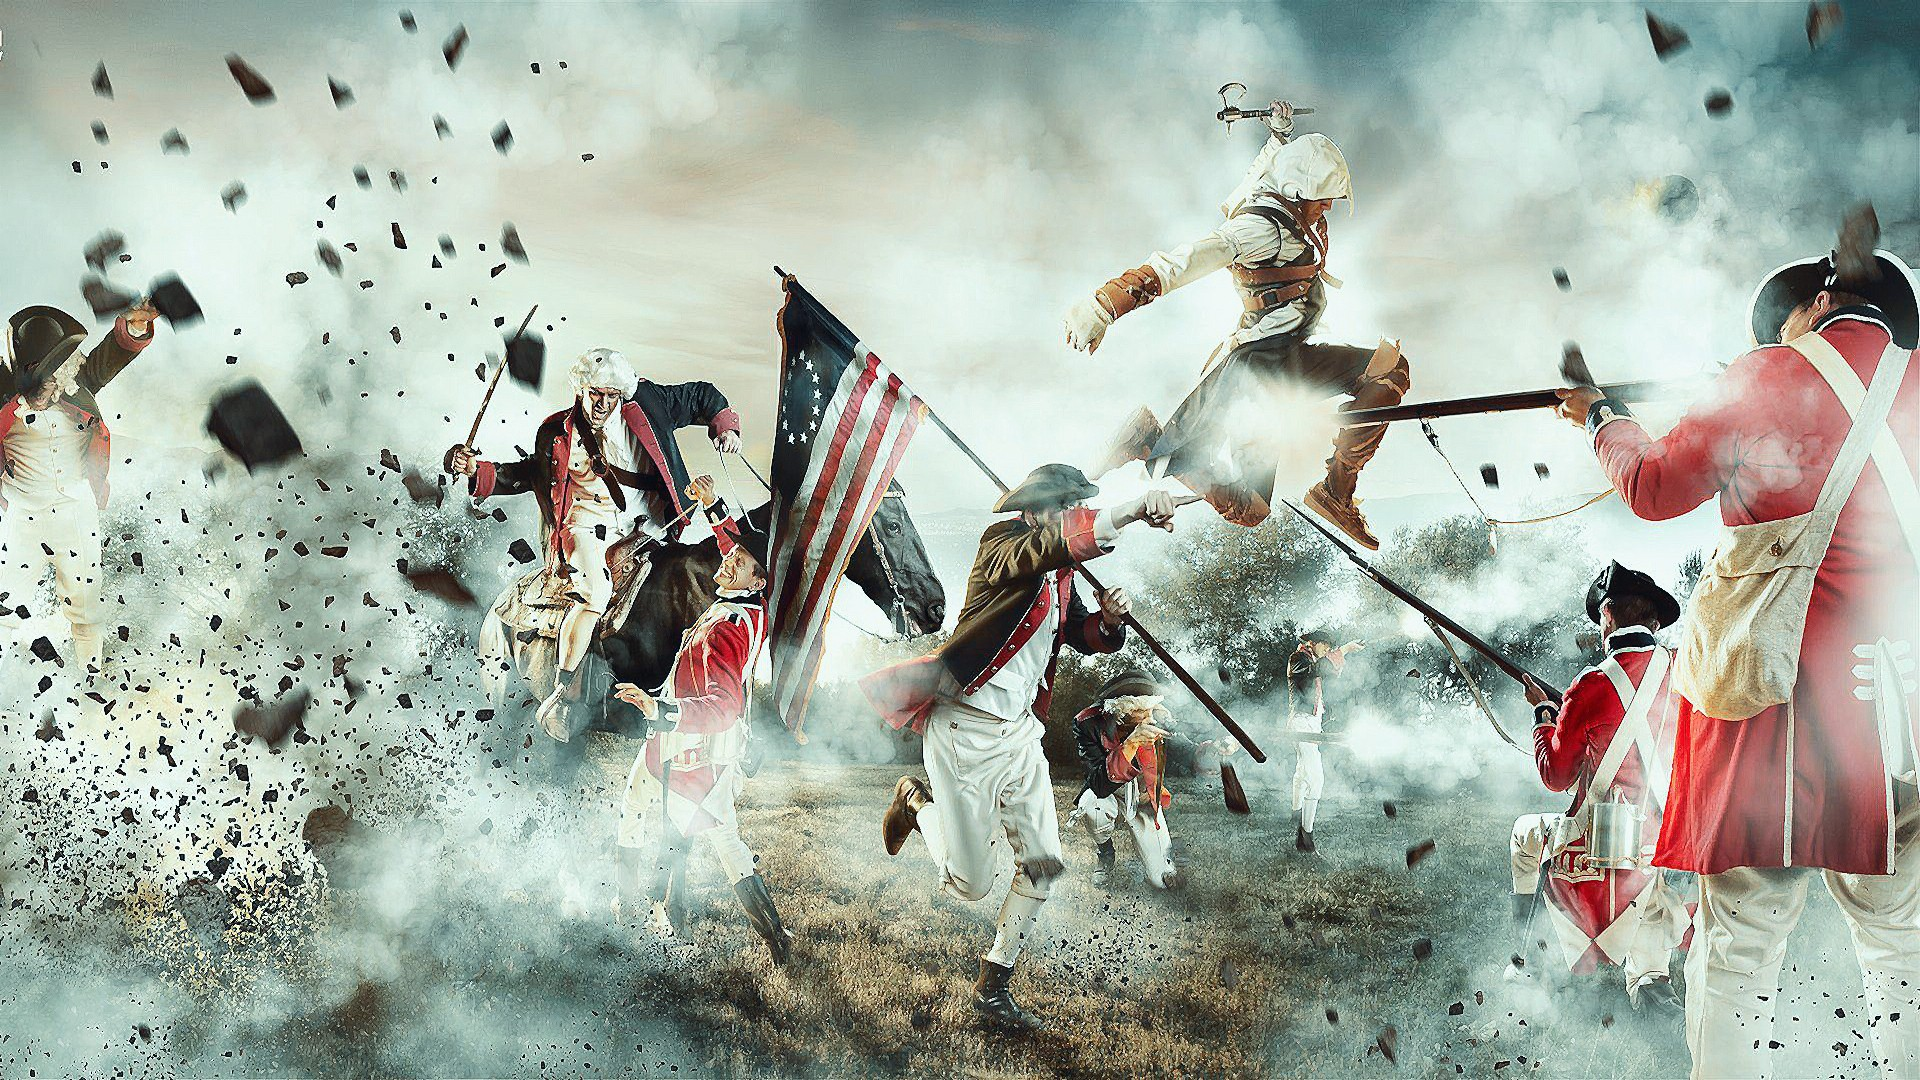 Assassins creed iii full hd wallpaper and background image video game assassins creed iii wallpaper voltagebd Choice Image